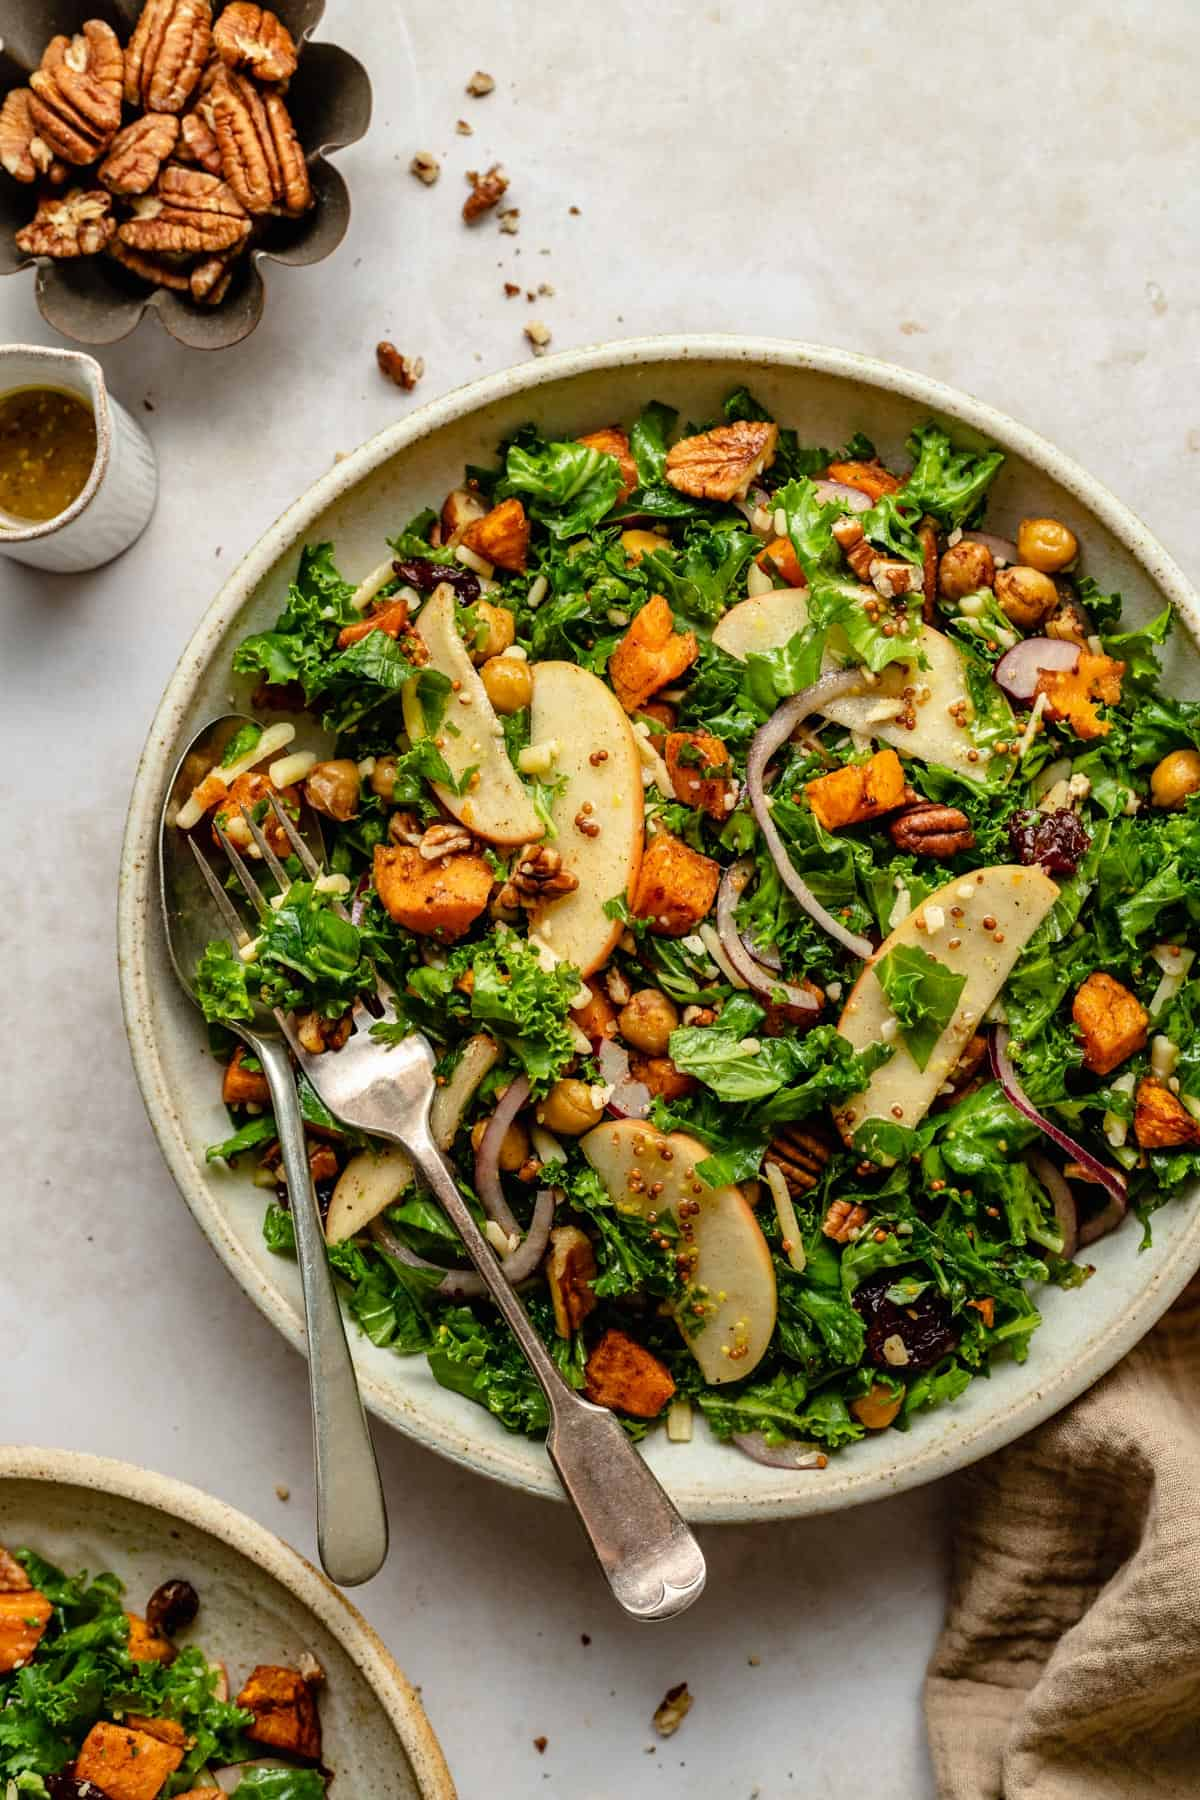 Warm sweet potato kale salad in a serving bowl with a spoon and fork and a jug of dressing